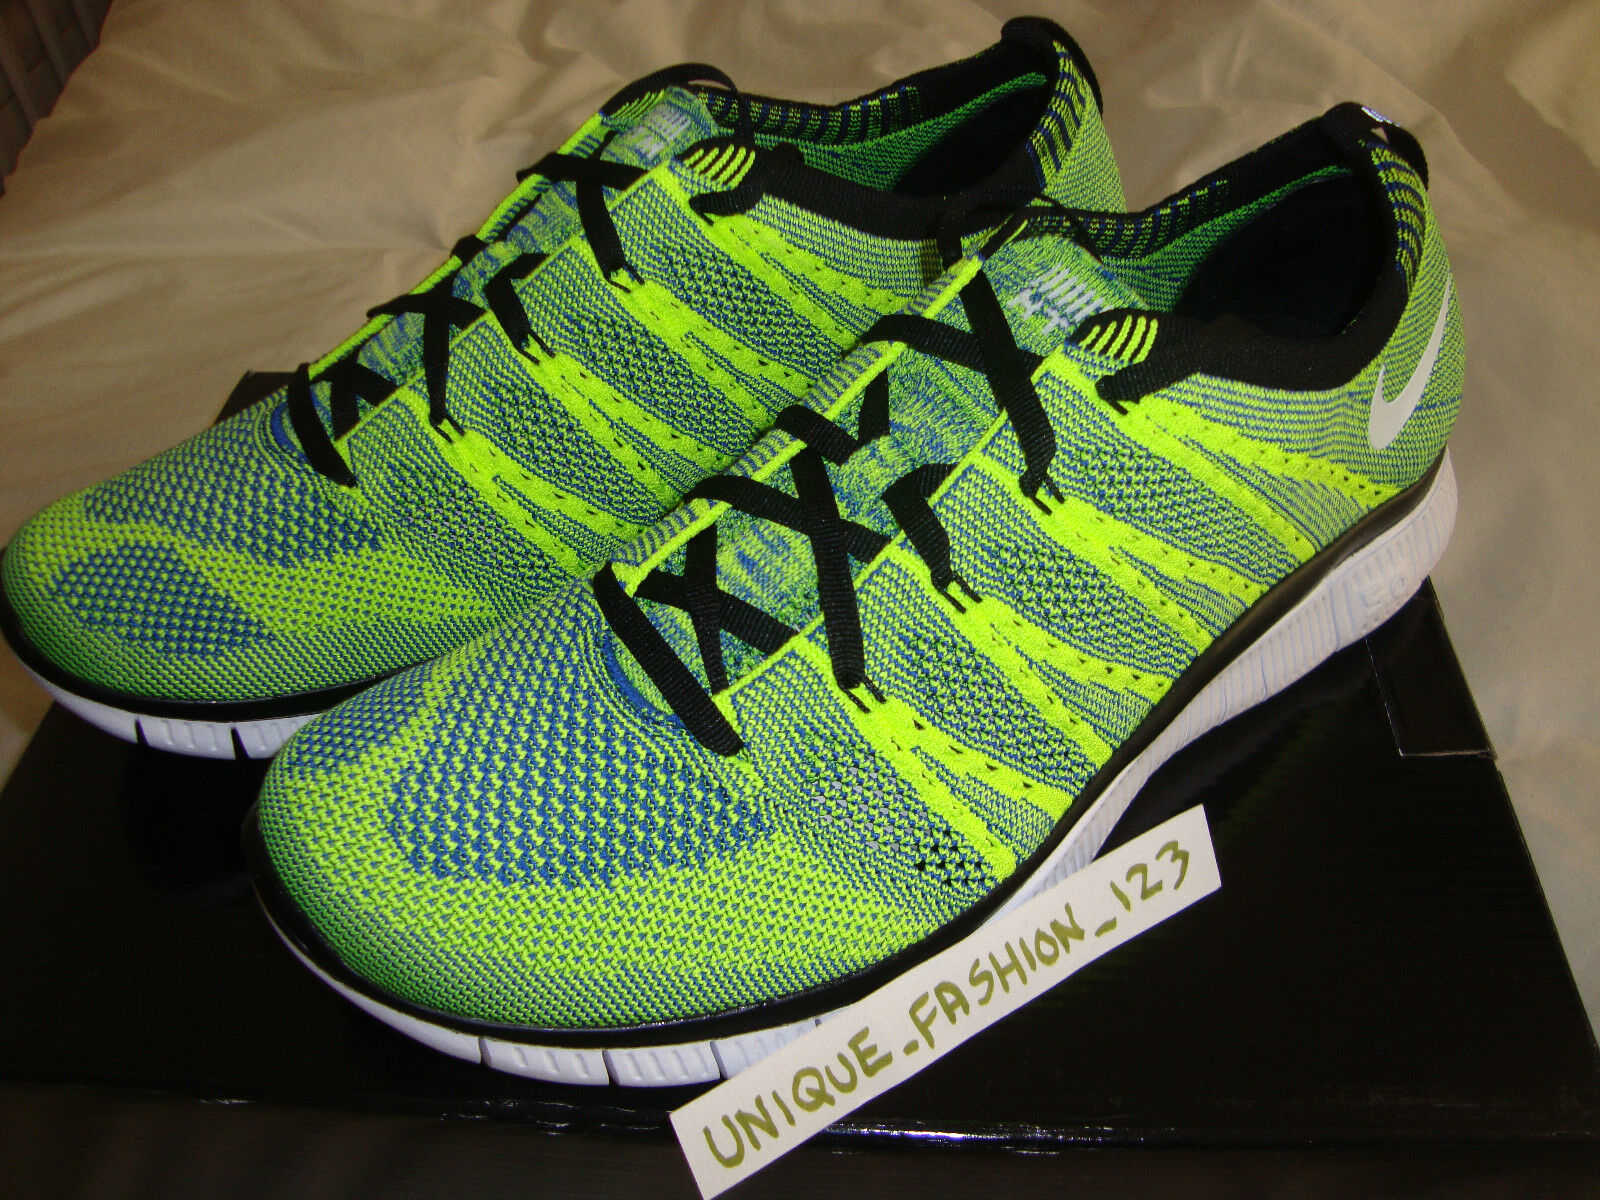 NIKE FREE FLYKNIT HTM SP VOLT GREEN US 12 MIXTURE 2013 CITY CHUKKA